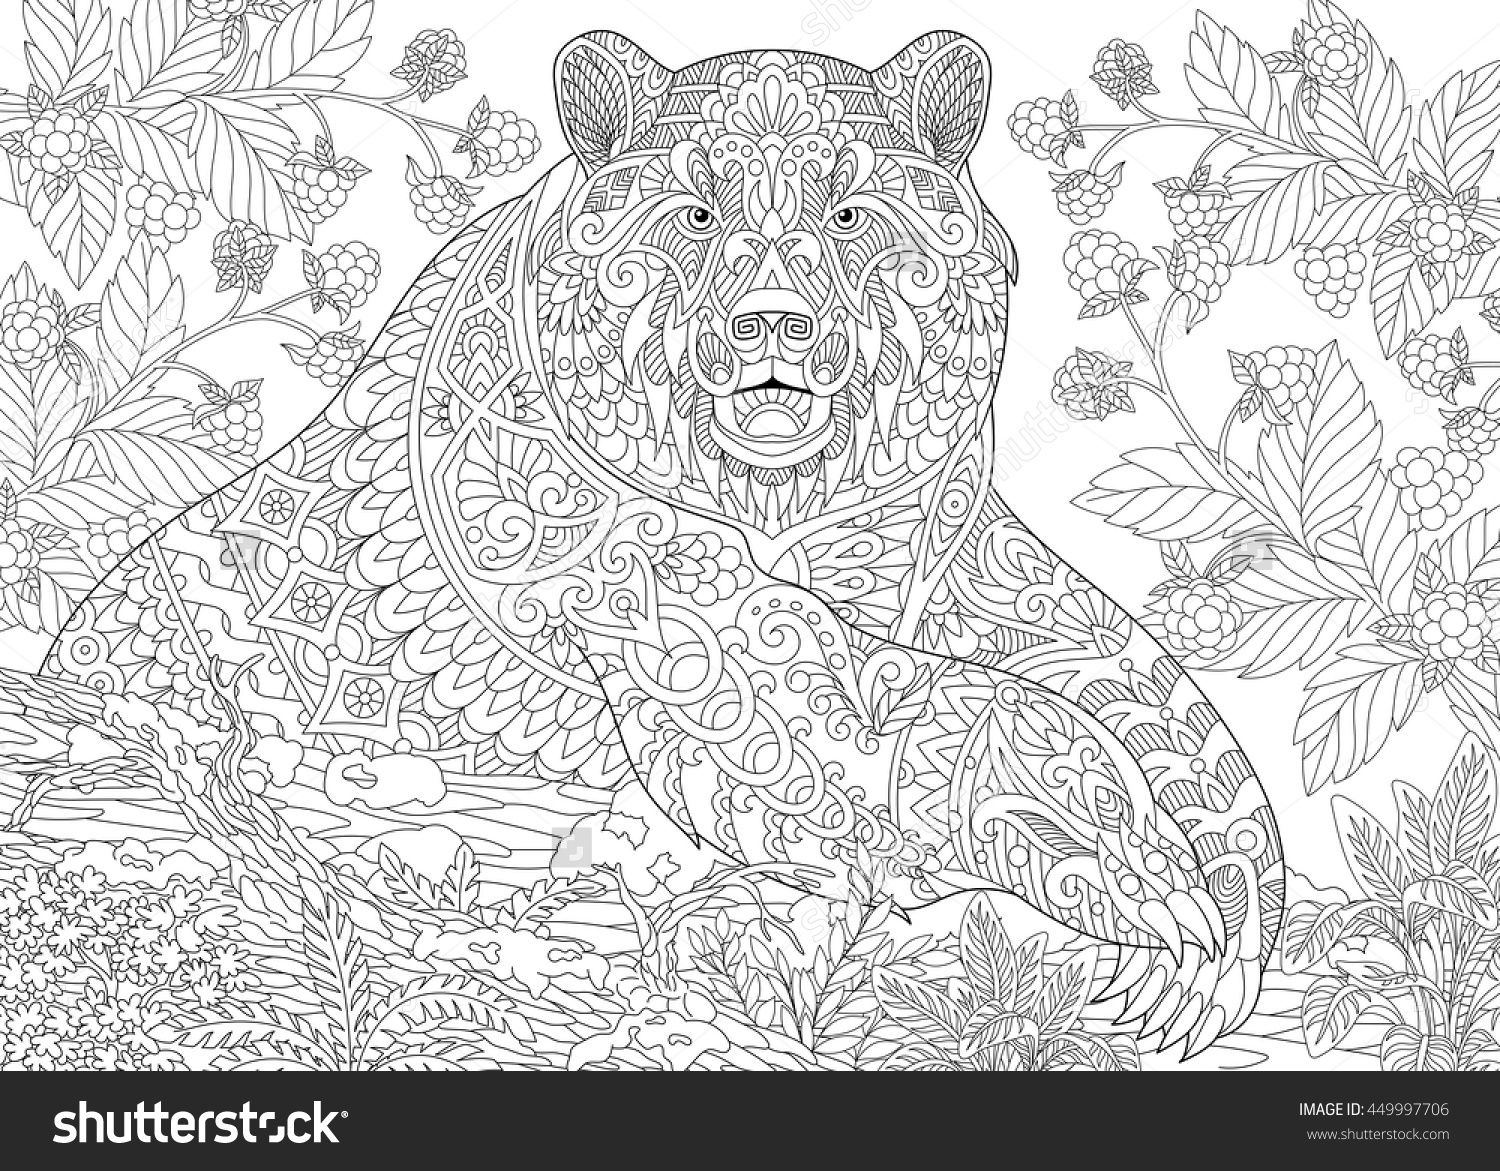 Stylized Grizzly Bear Among Blackberries Or Raspberries In ...